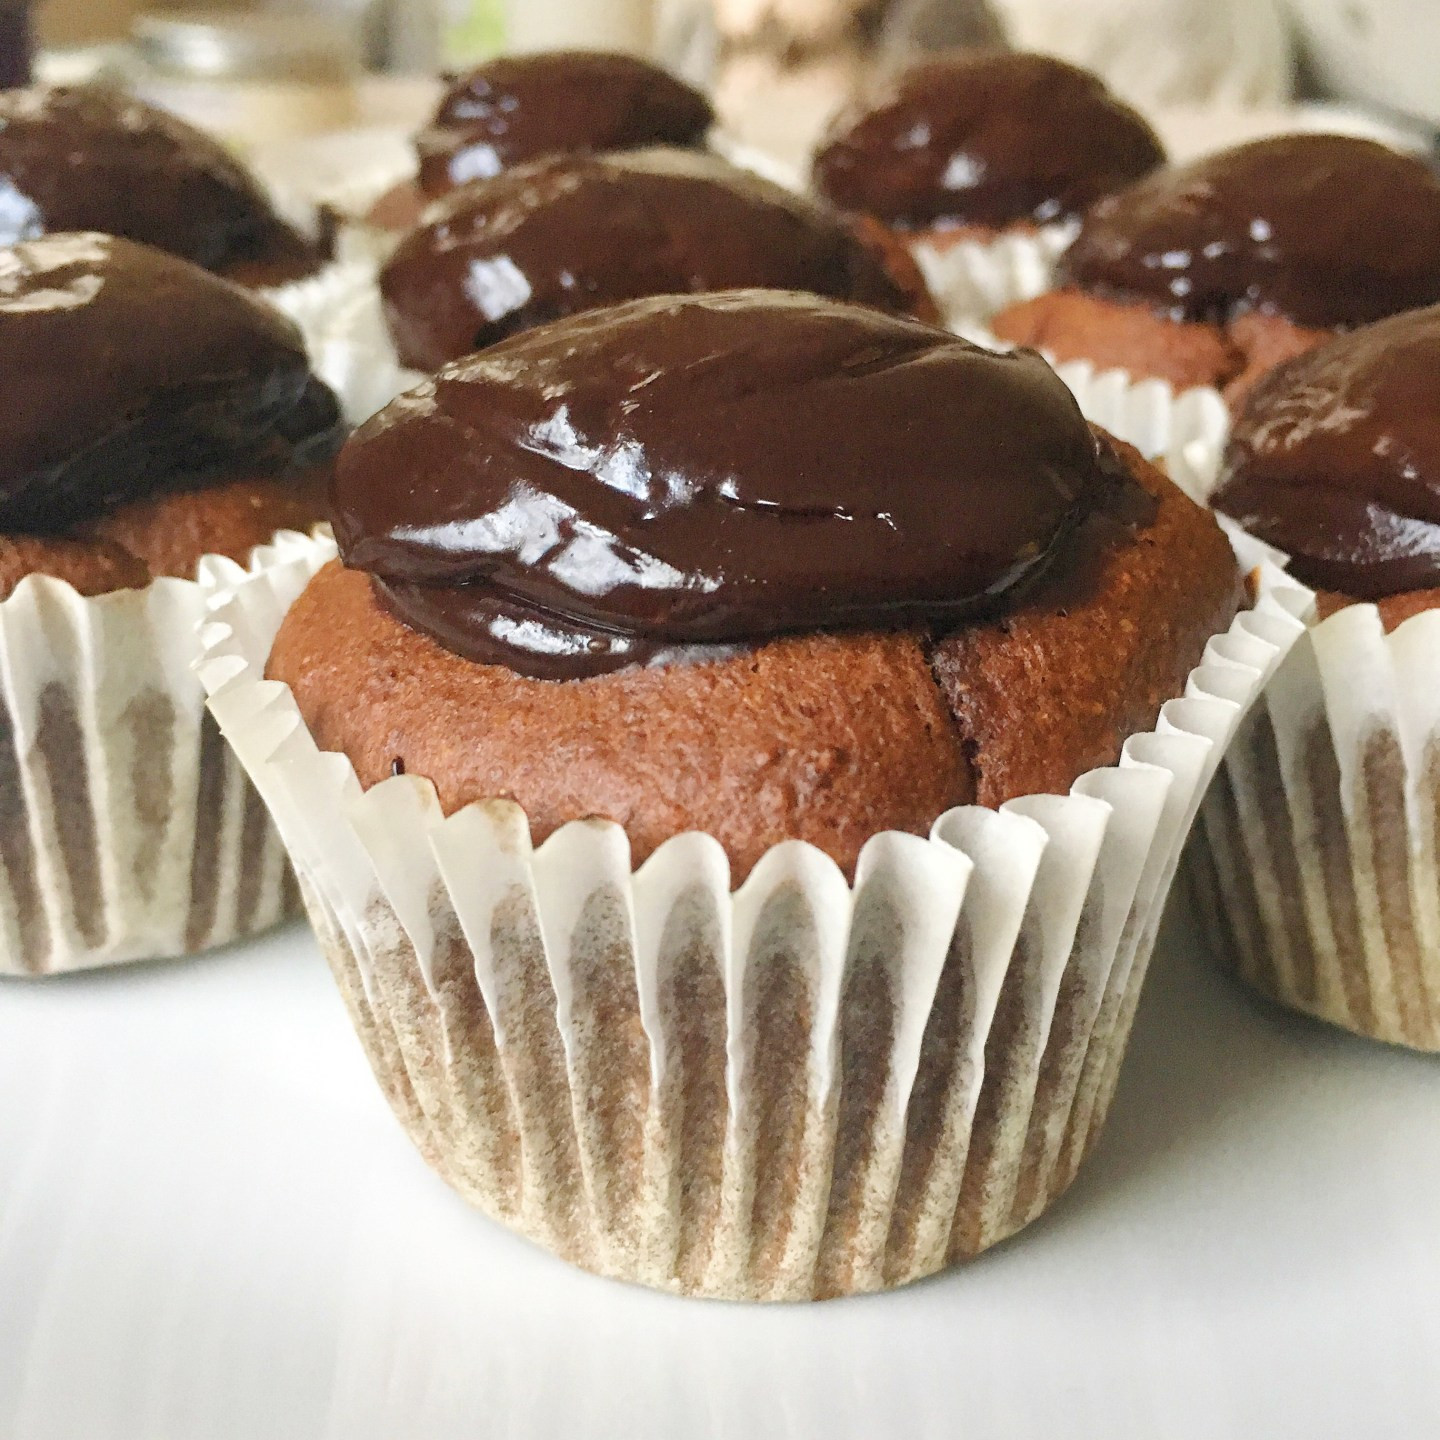 Chocolate cupakes with chocolate fudge icing